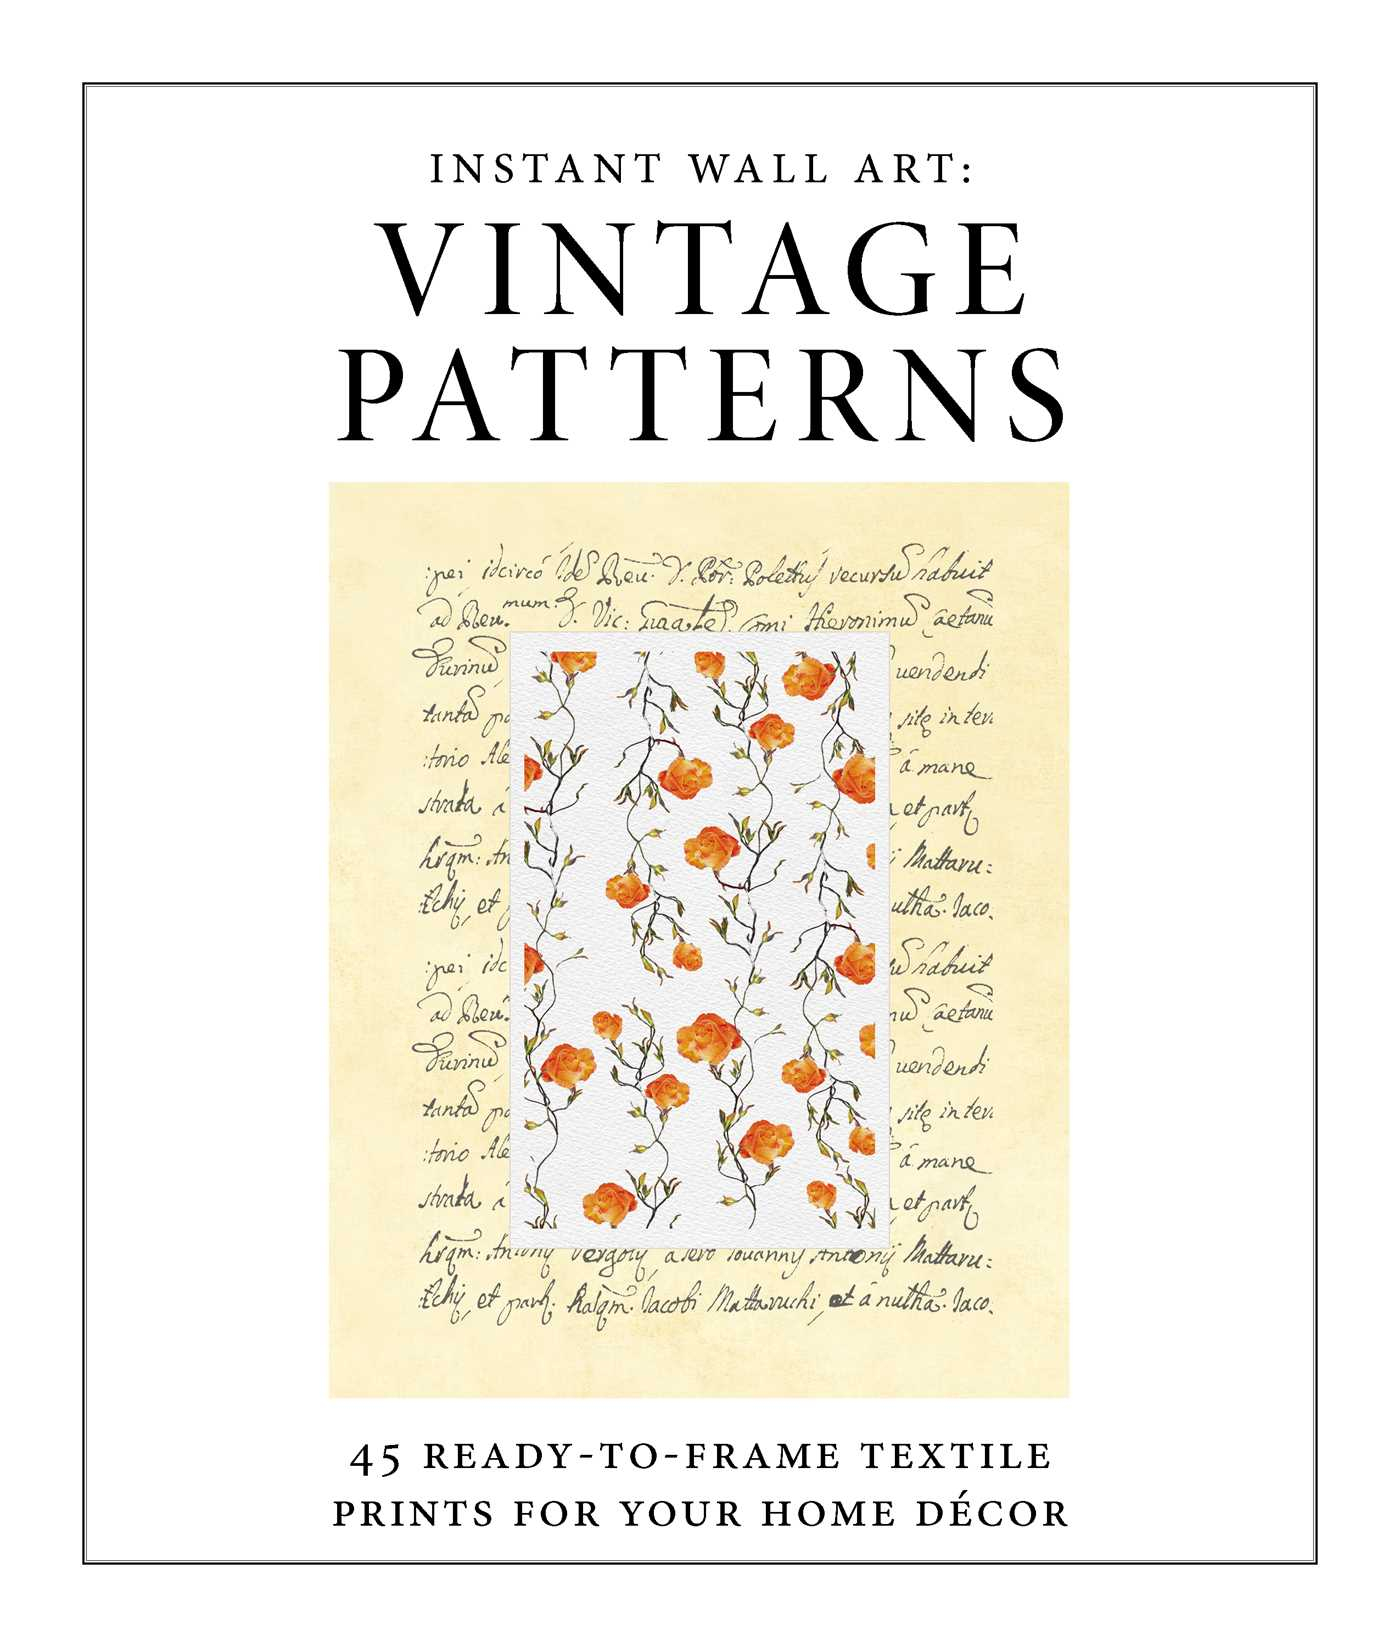 Instant wall art vintage patterns 9781507205938 hr